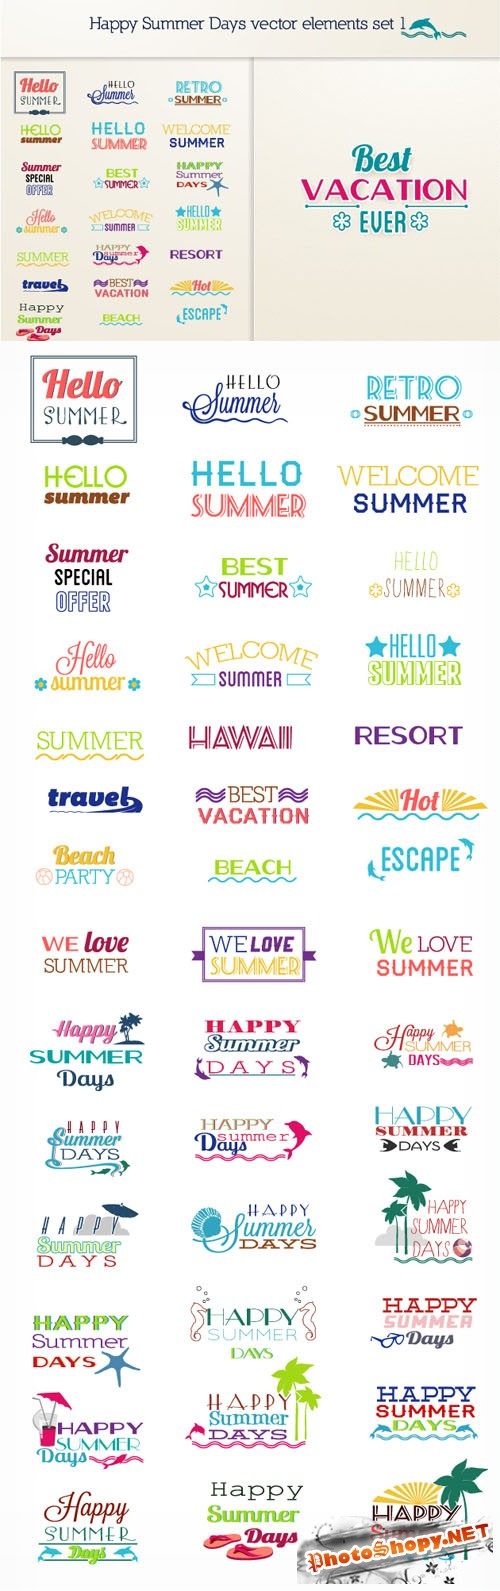 Designtnt - Summer vector elements set 1